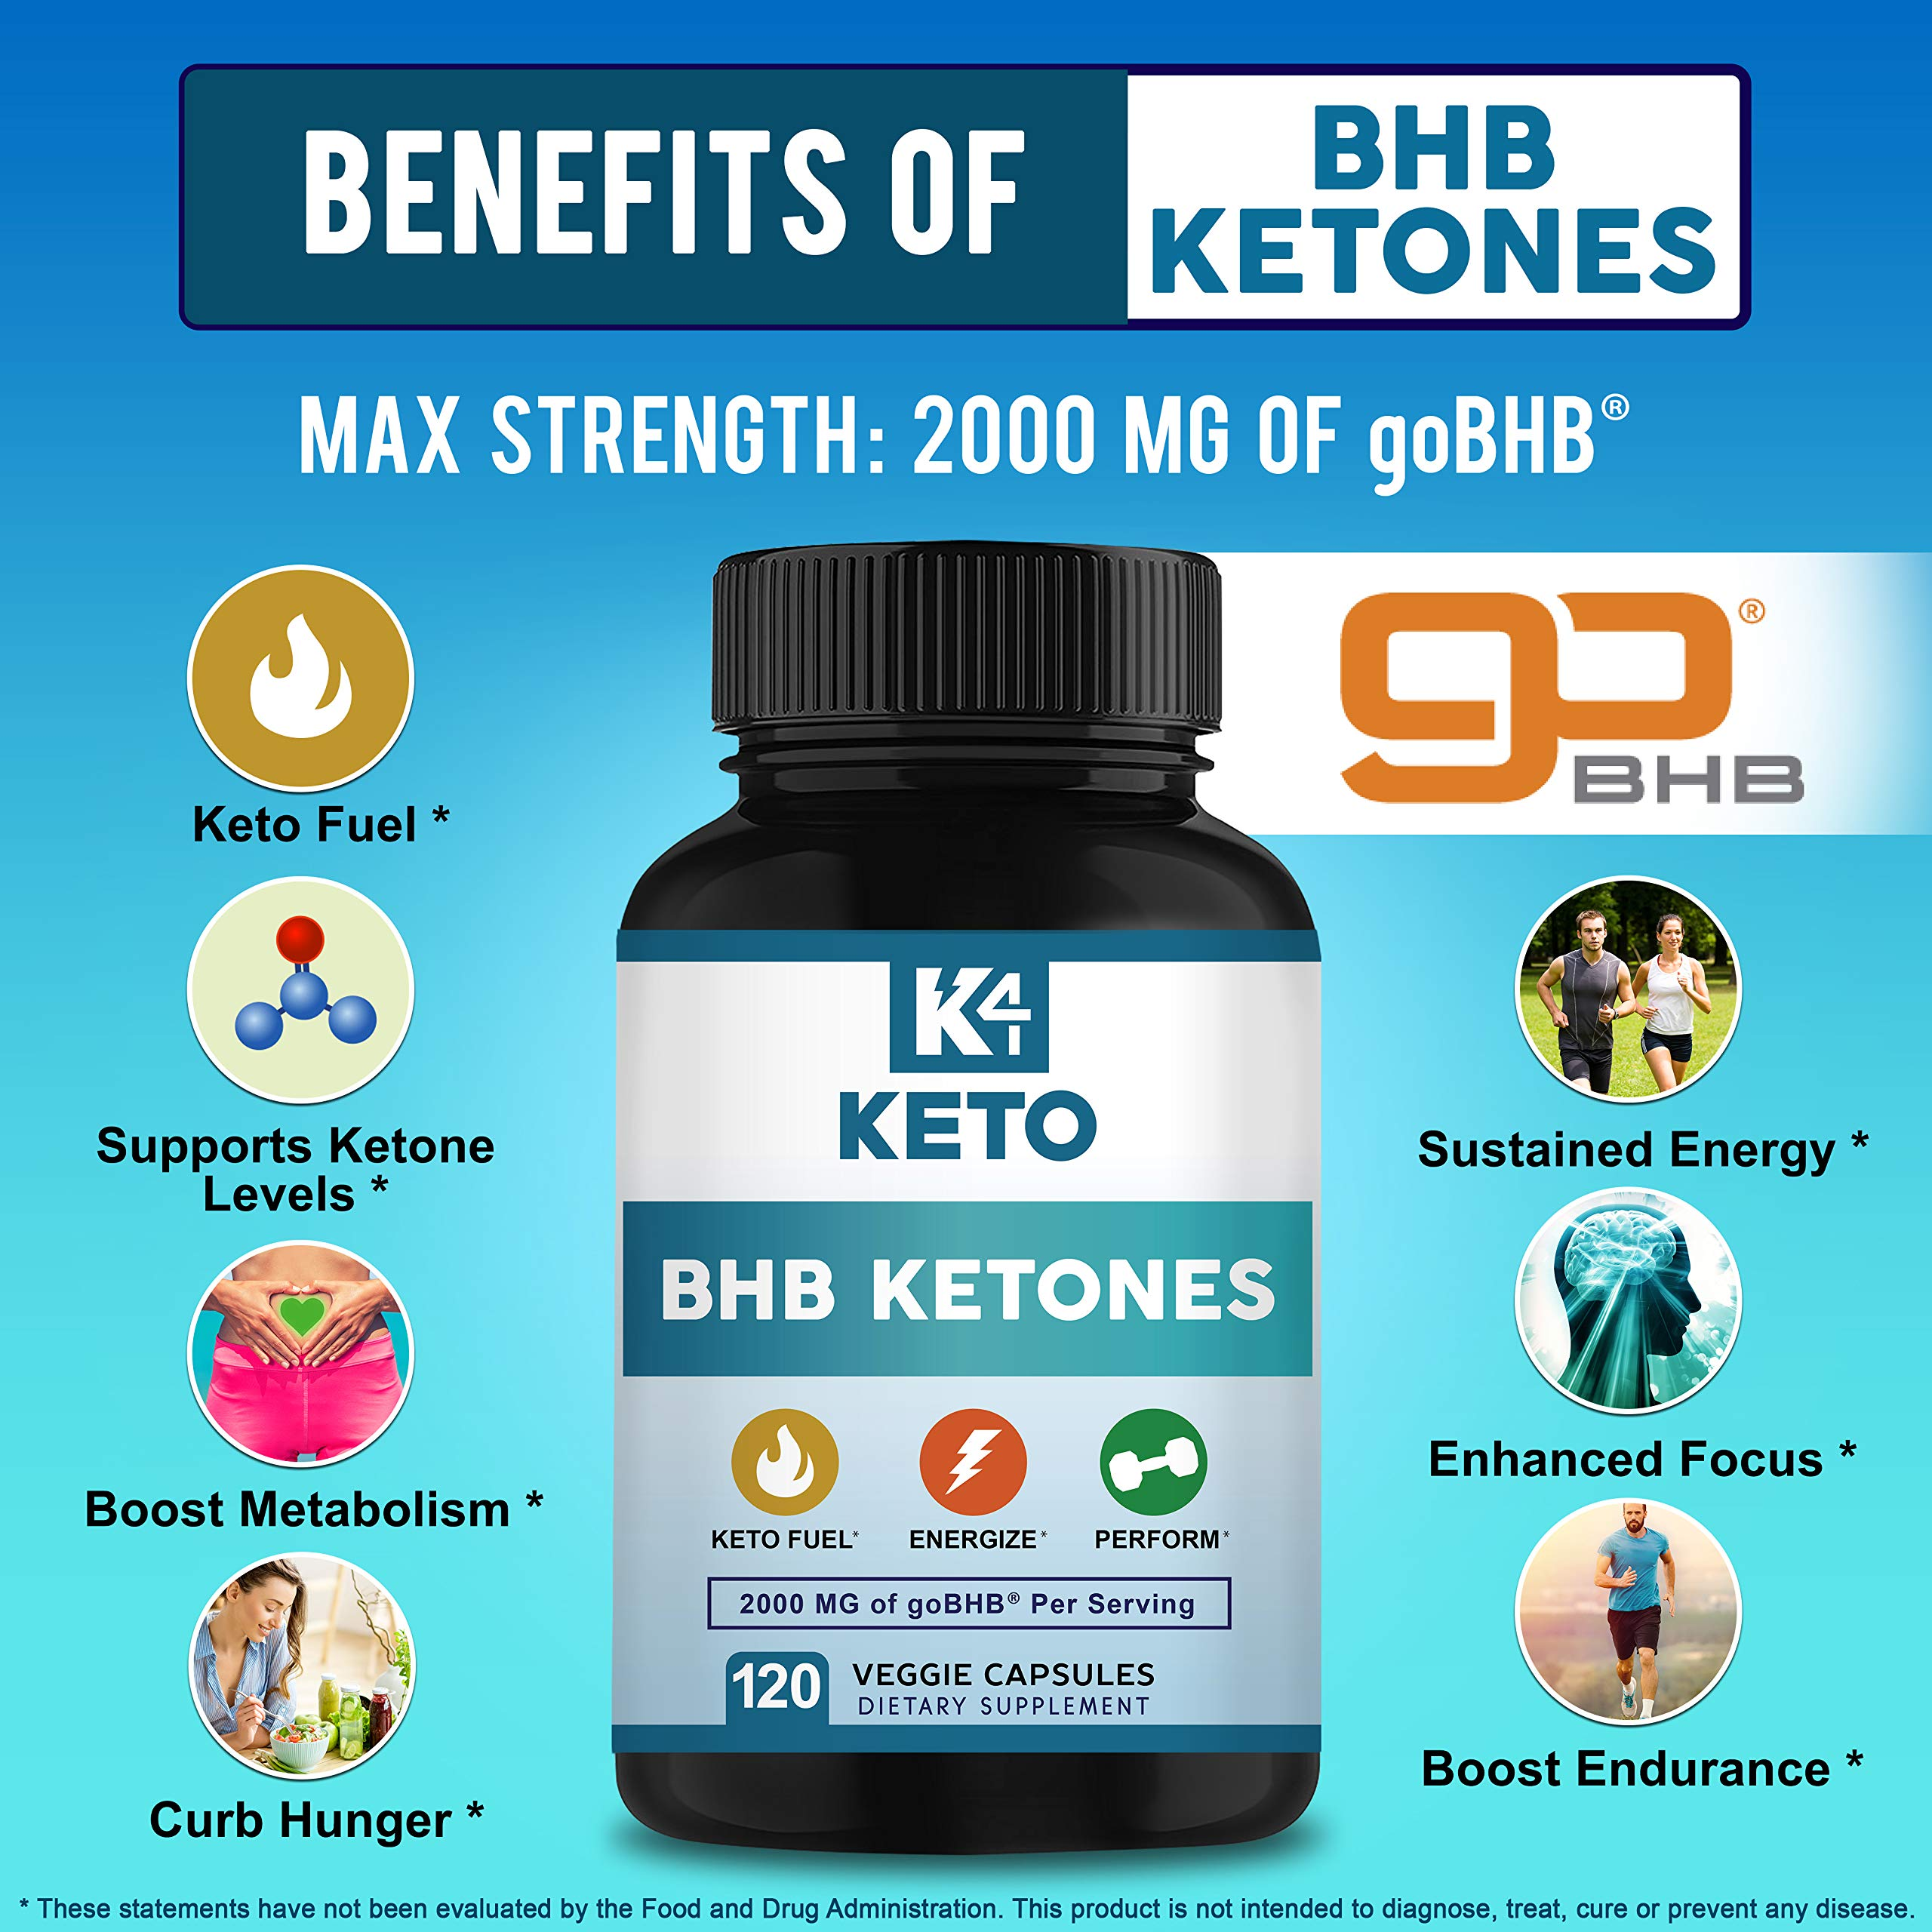 K4 Keto BHB - Exogenous Ketones BHB Salts Capsules - 2000mg of Patented goBHB Beta-Hydroxybutyrate - Ketone Supplement Pills to Support Ketogenic Diet & Ketosis by K4 Keto (Image #2)